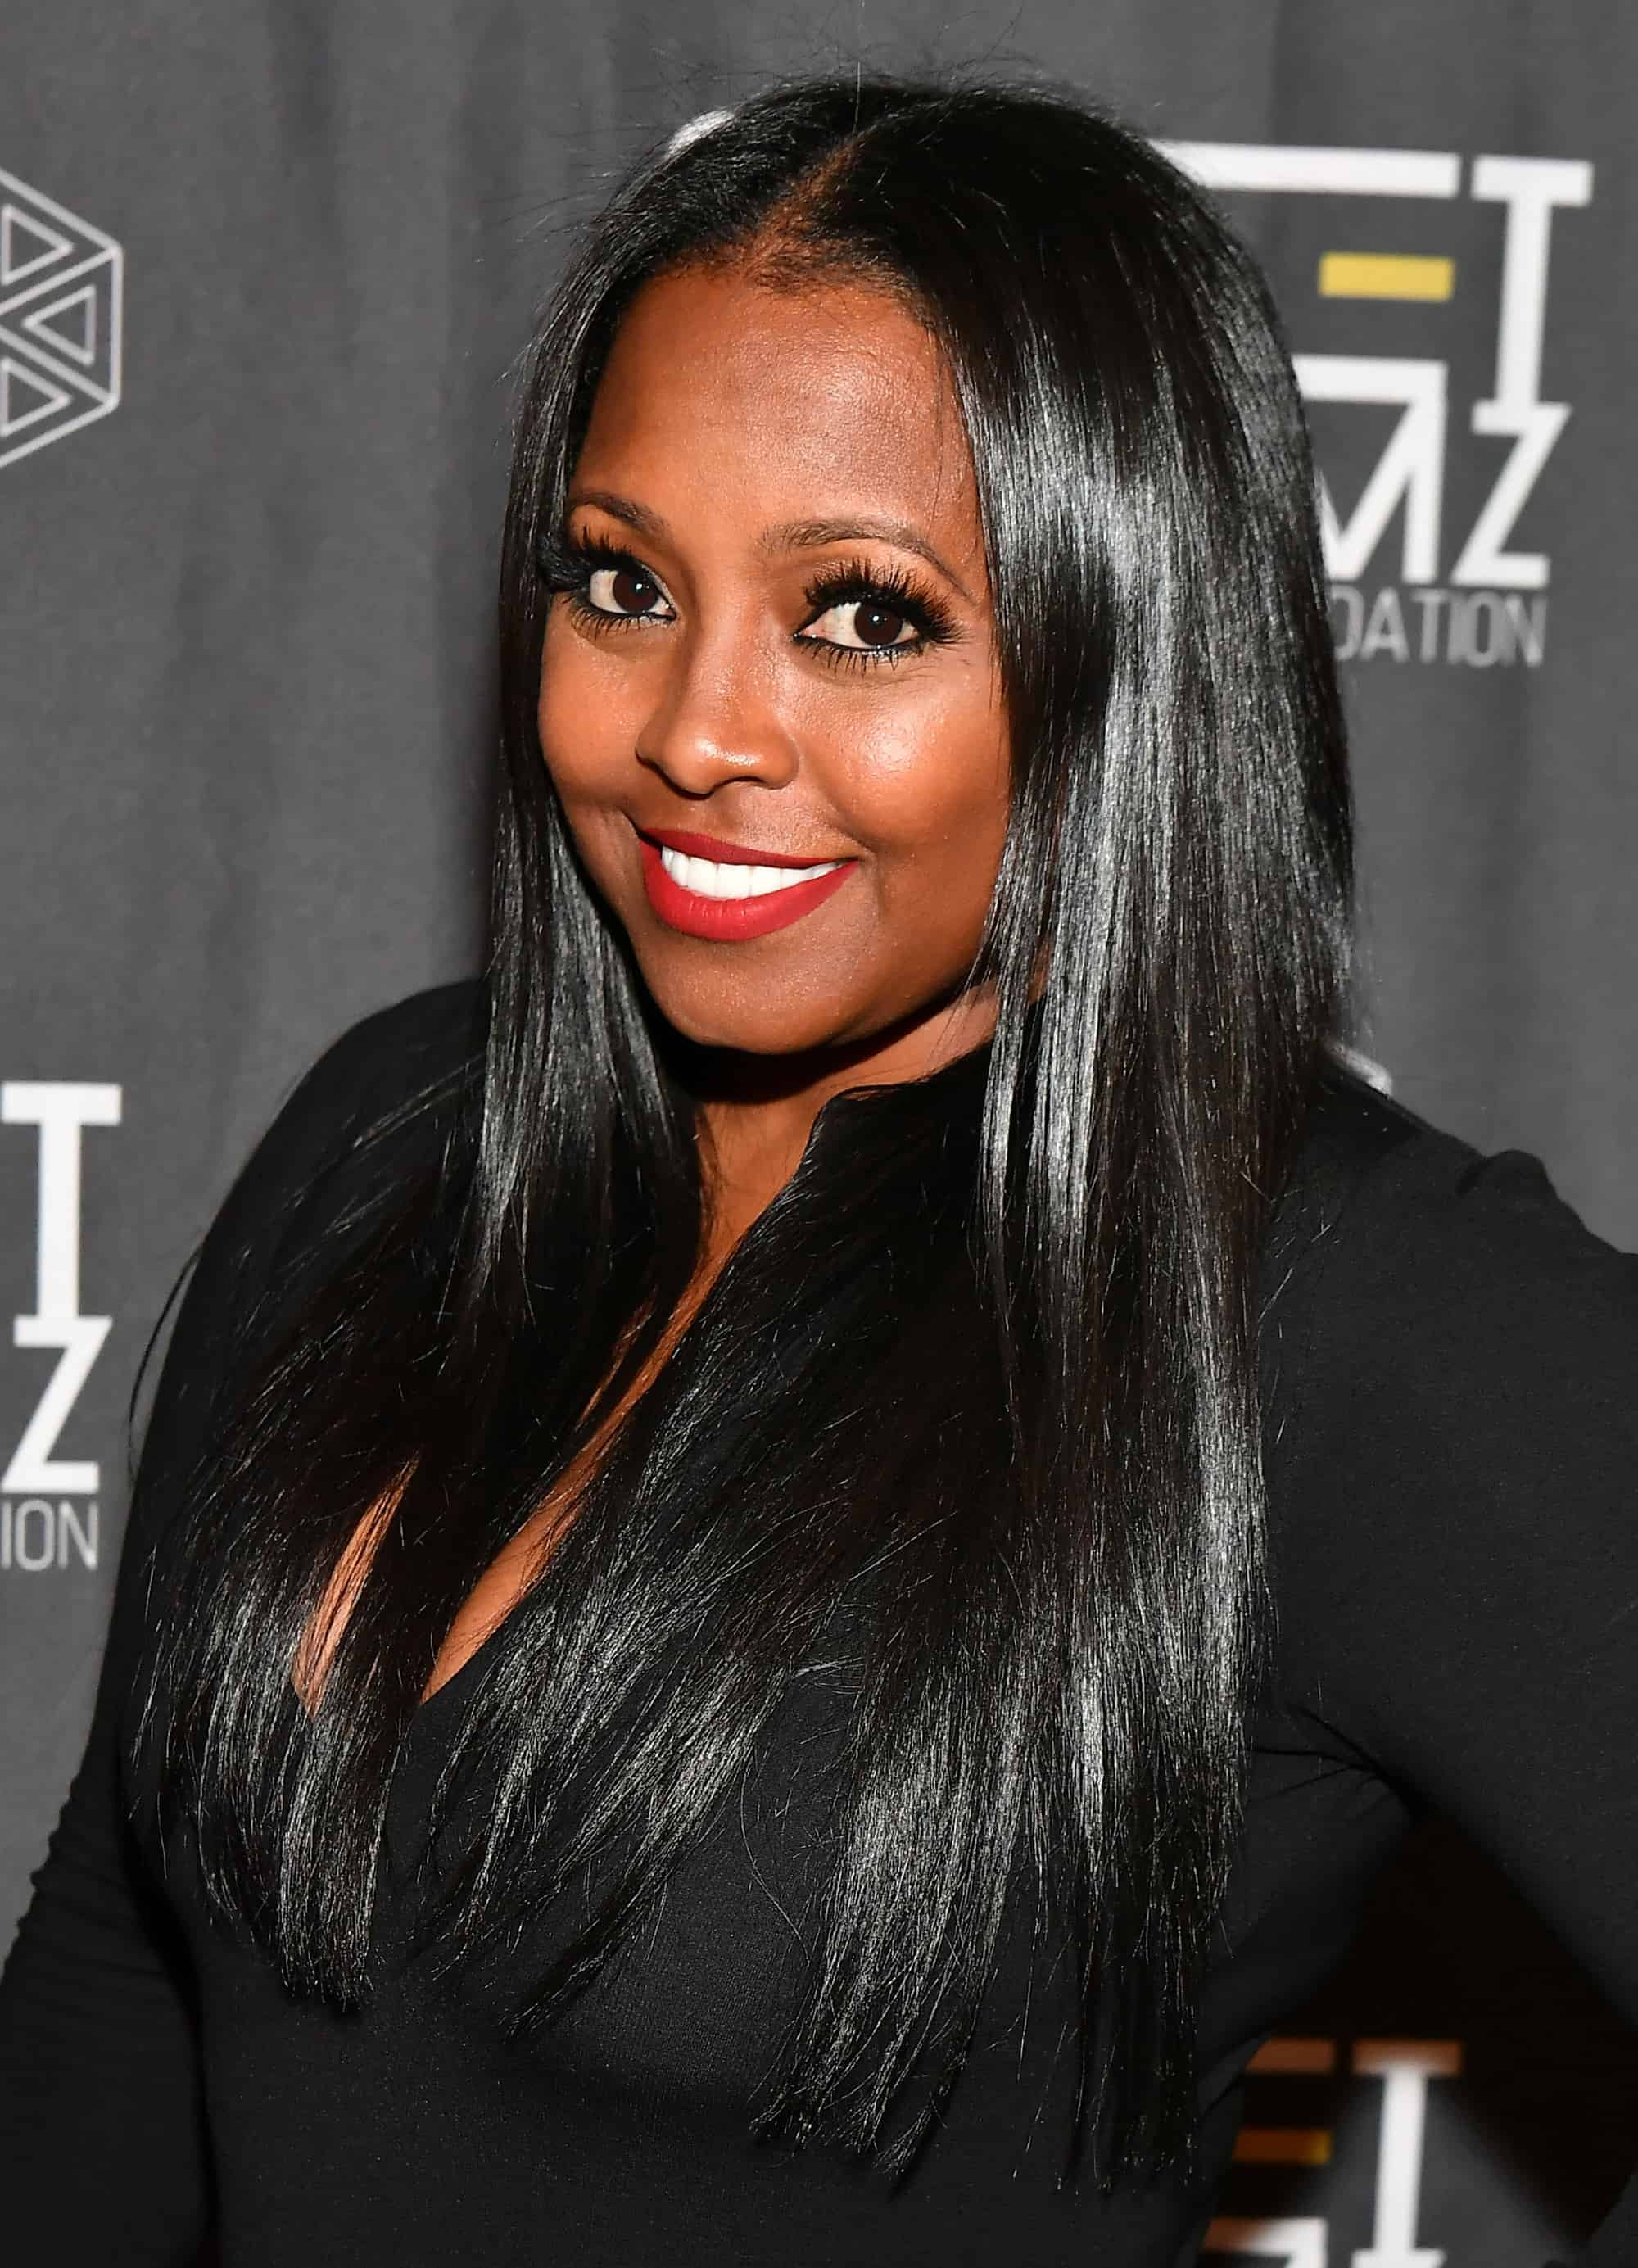 tsrpositiveimages keshia knight pulliam